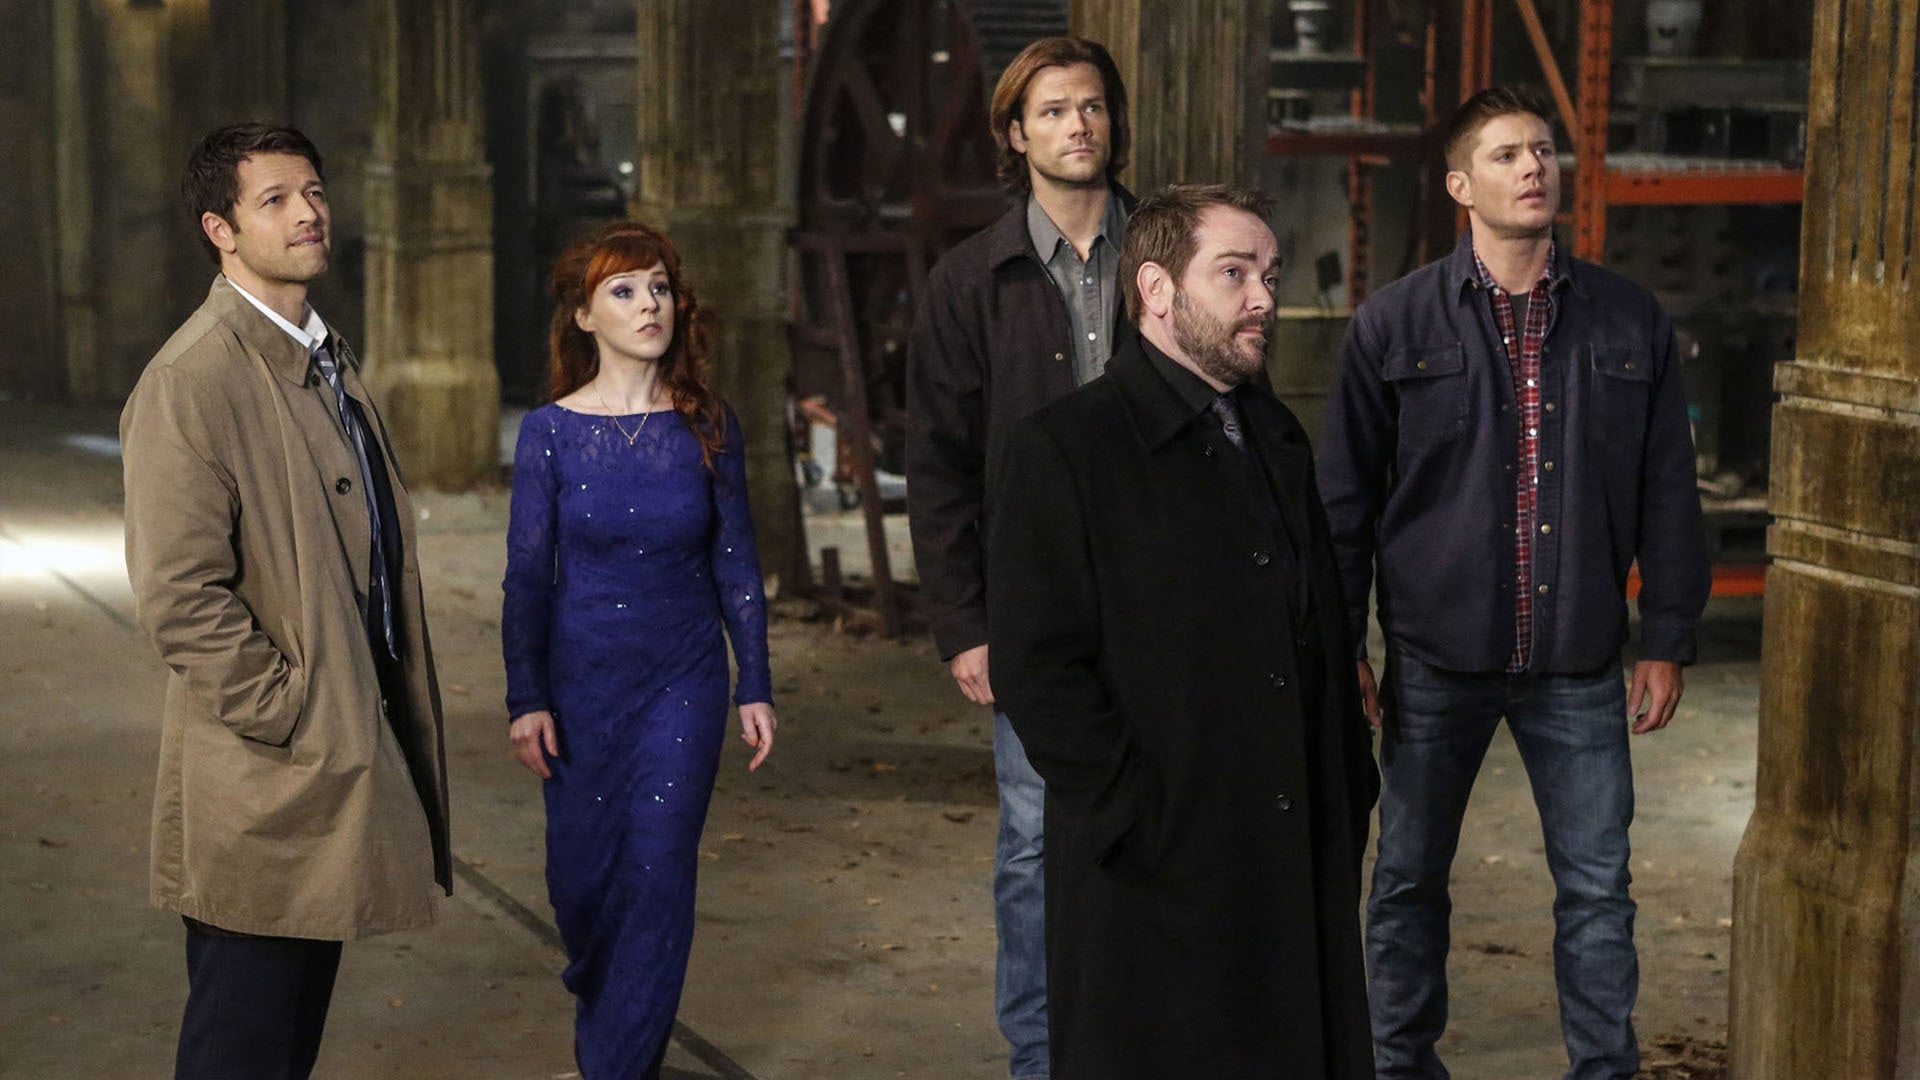 Supernatural - Season 11 Episode 22 : We Happy Few